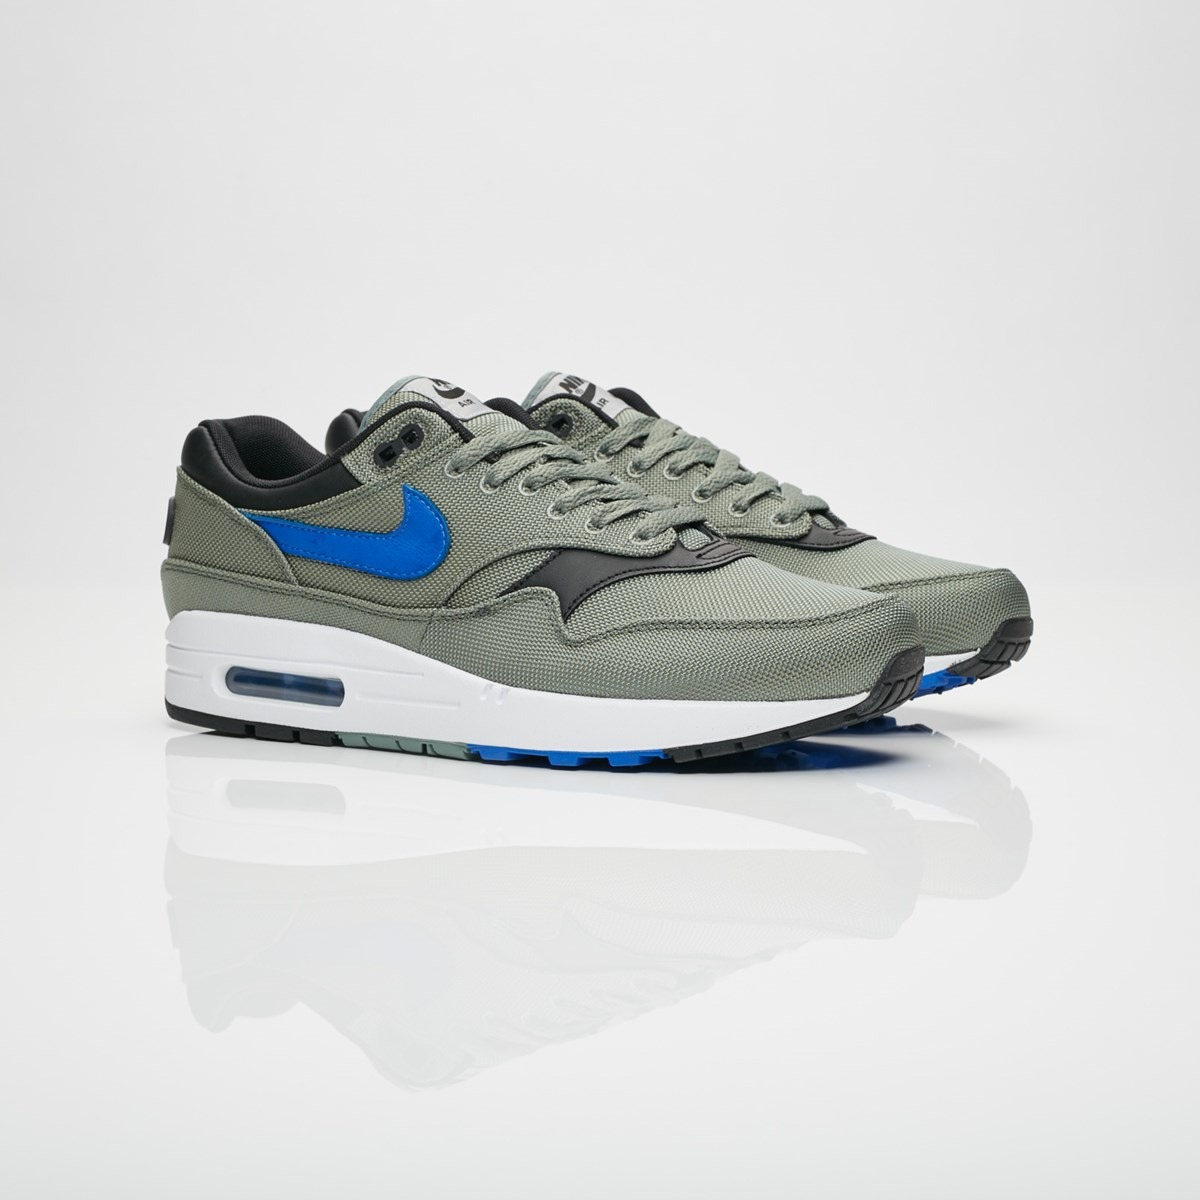 separation shoes e692a a77f4 nike air max 1 premium 875844 300 sneakers   streetwear på nätet sen 1999.  SNEAKERSNSTUFF